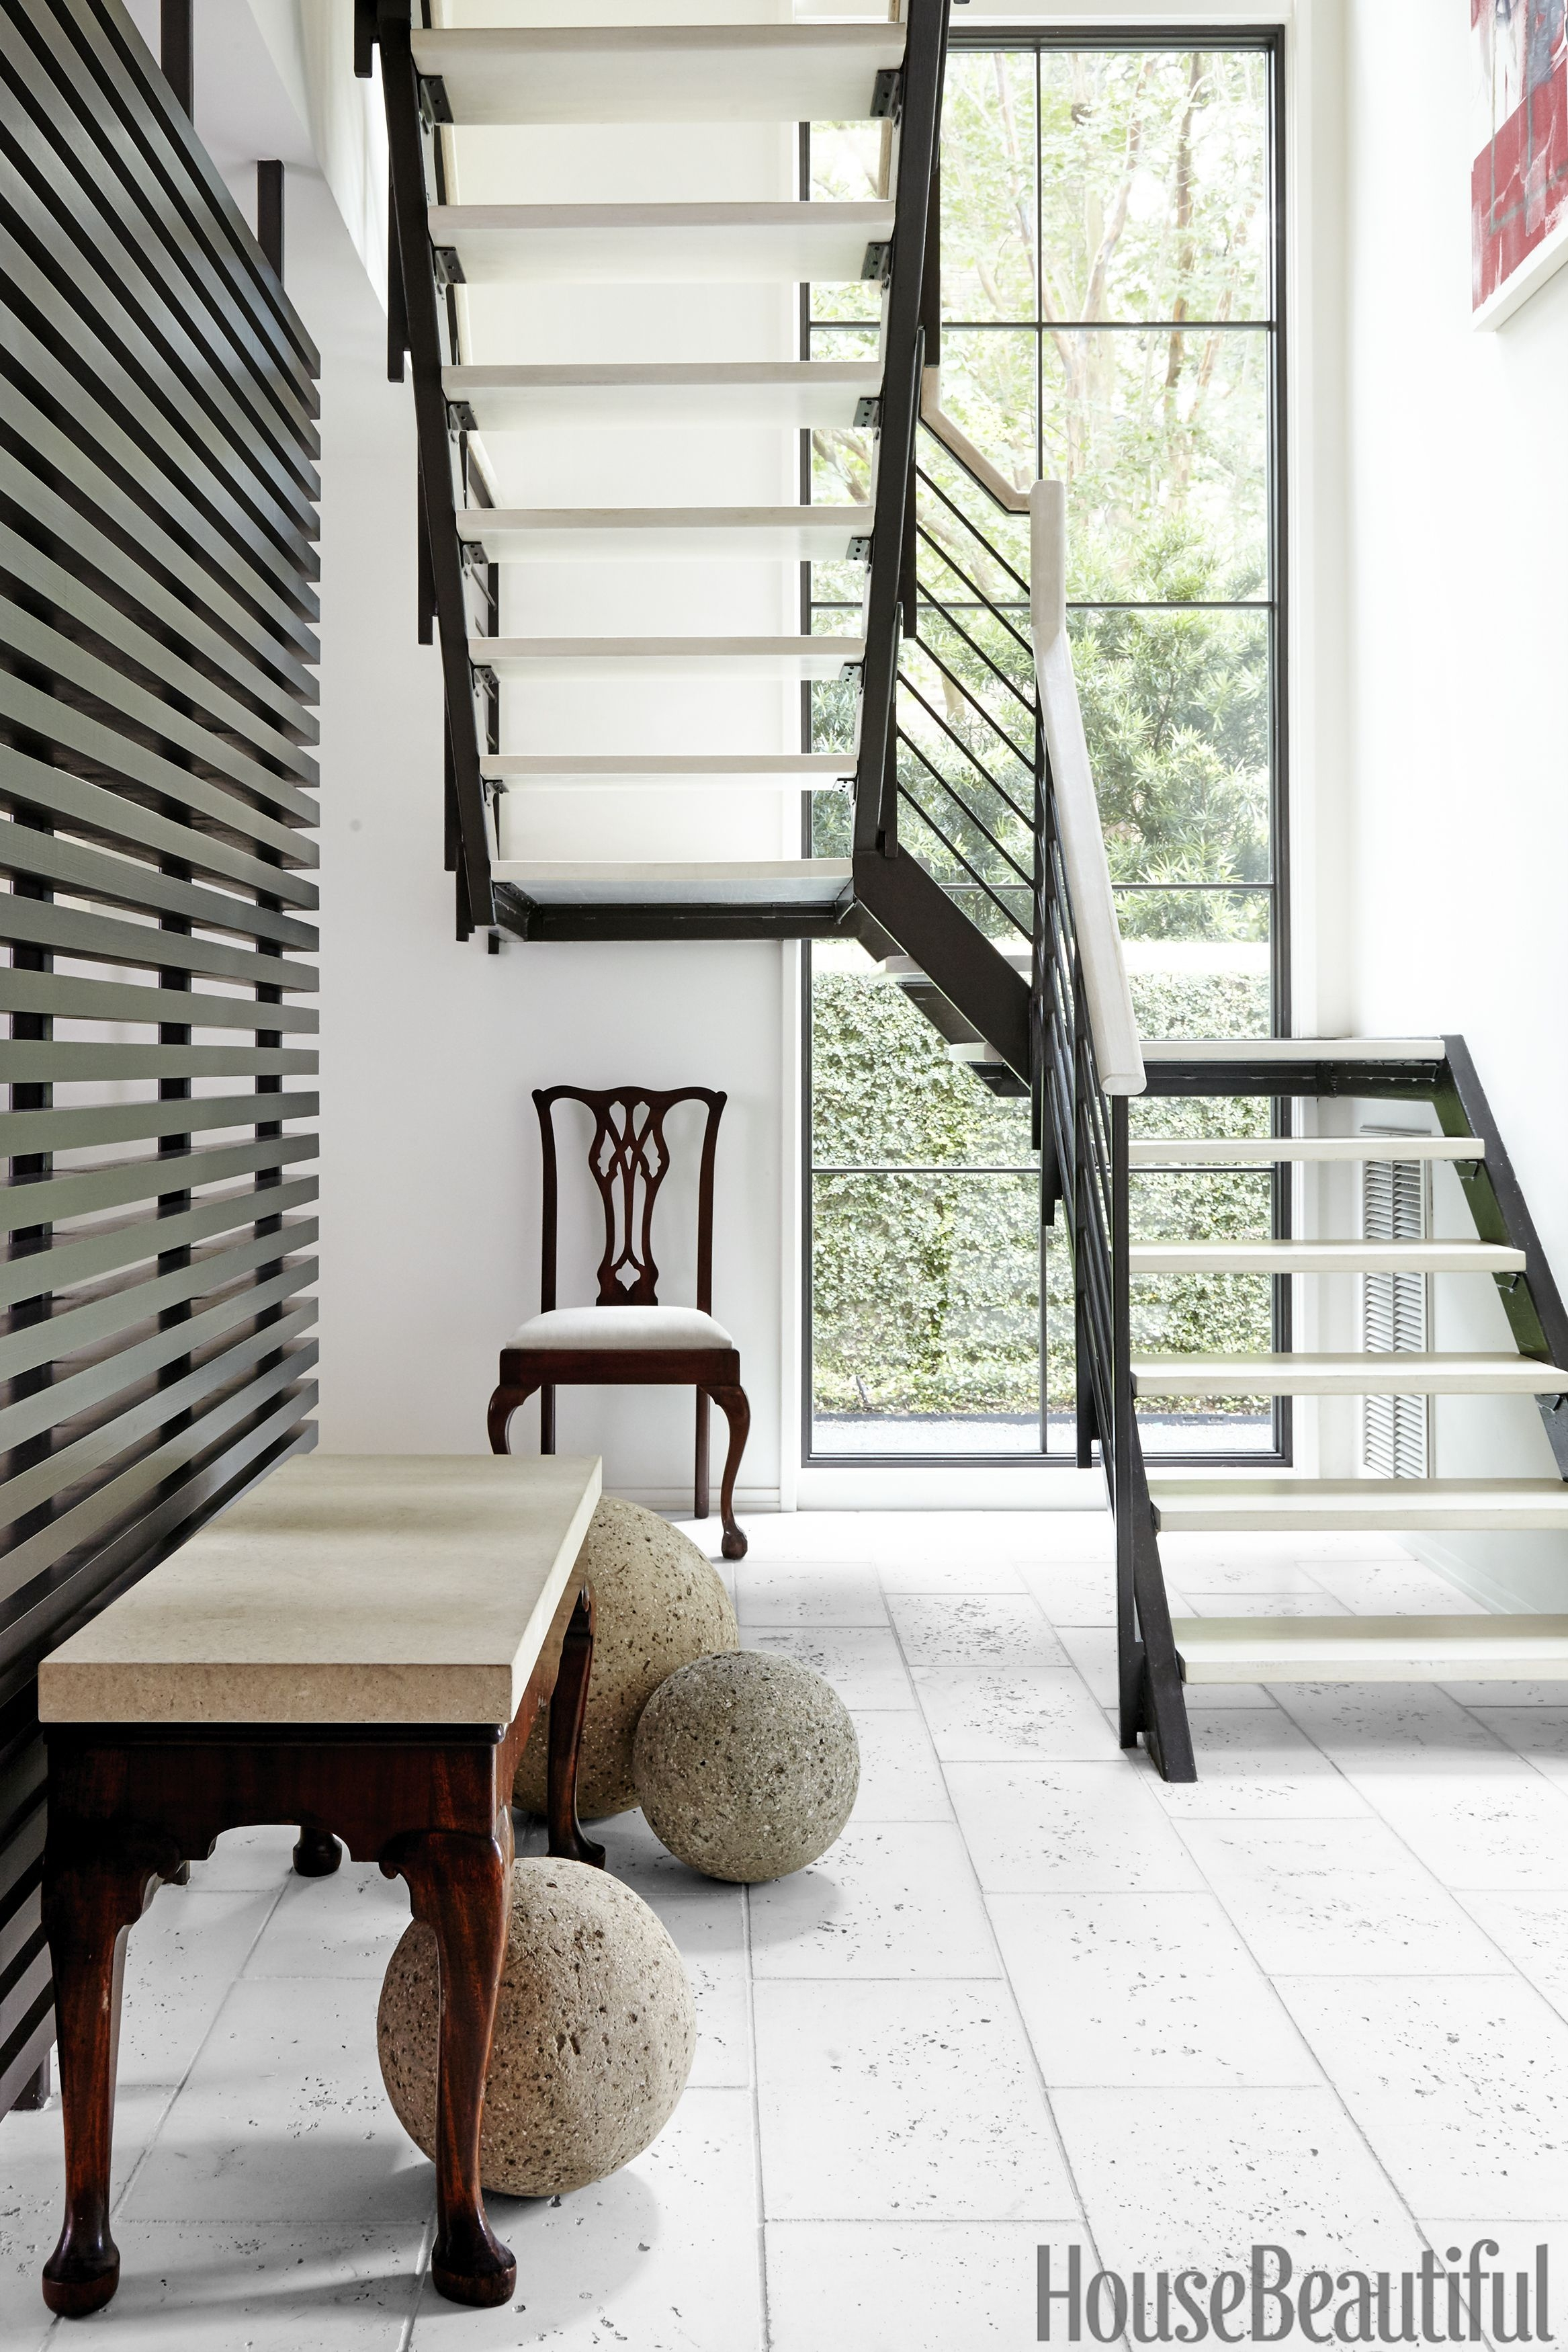 25 Unique Stair Designs Beautiful Stair Ideas For Your House   Outside Steps Design For Home   Storage Underneath   Small Space   Interior   Natural Outdoor   Railing